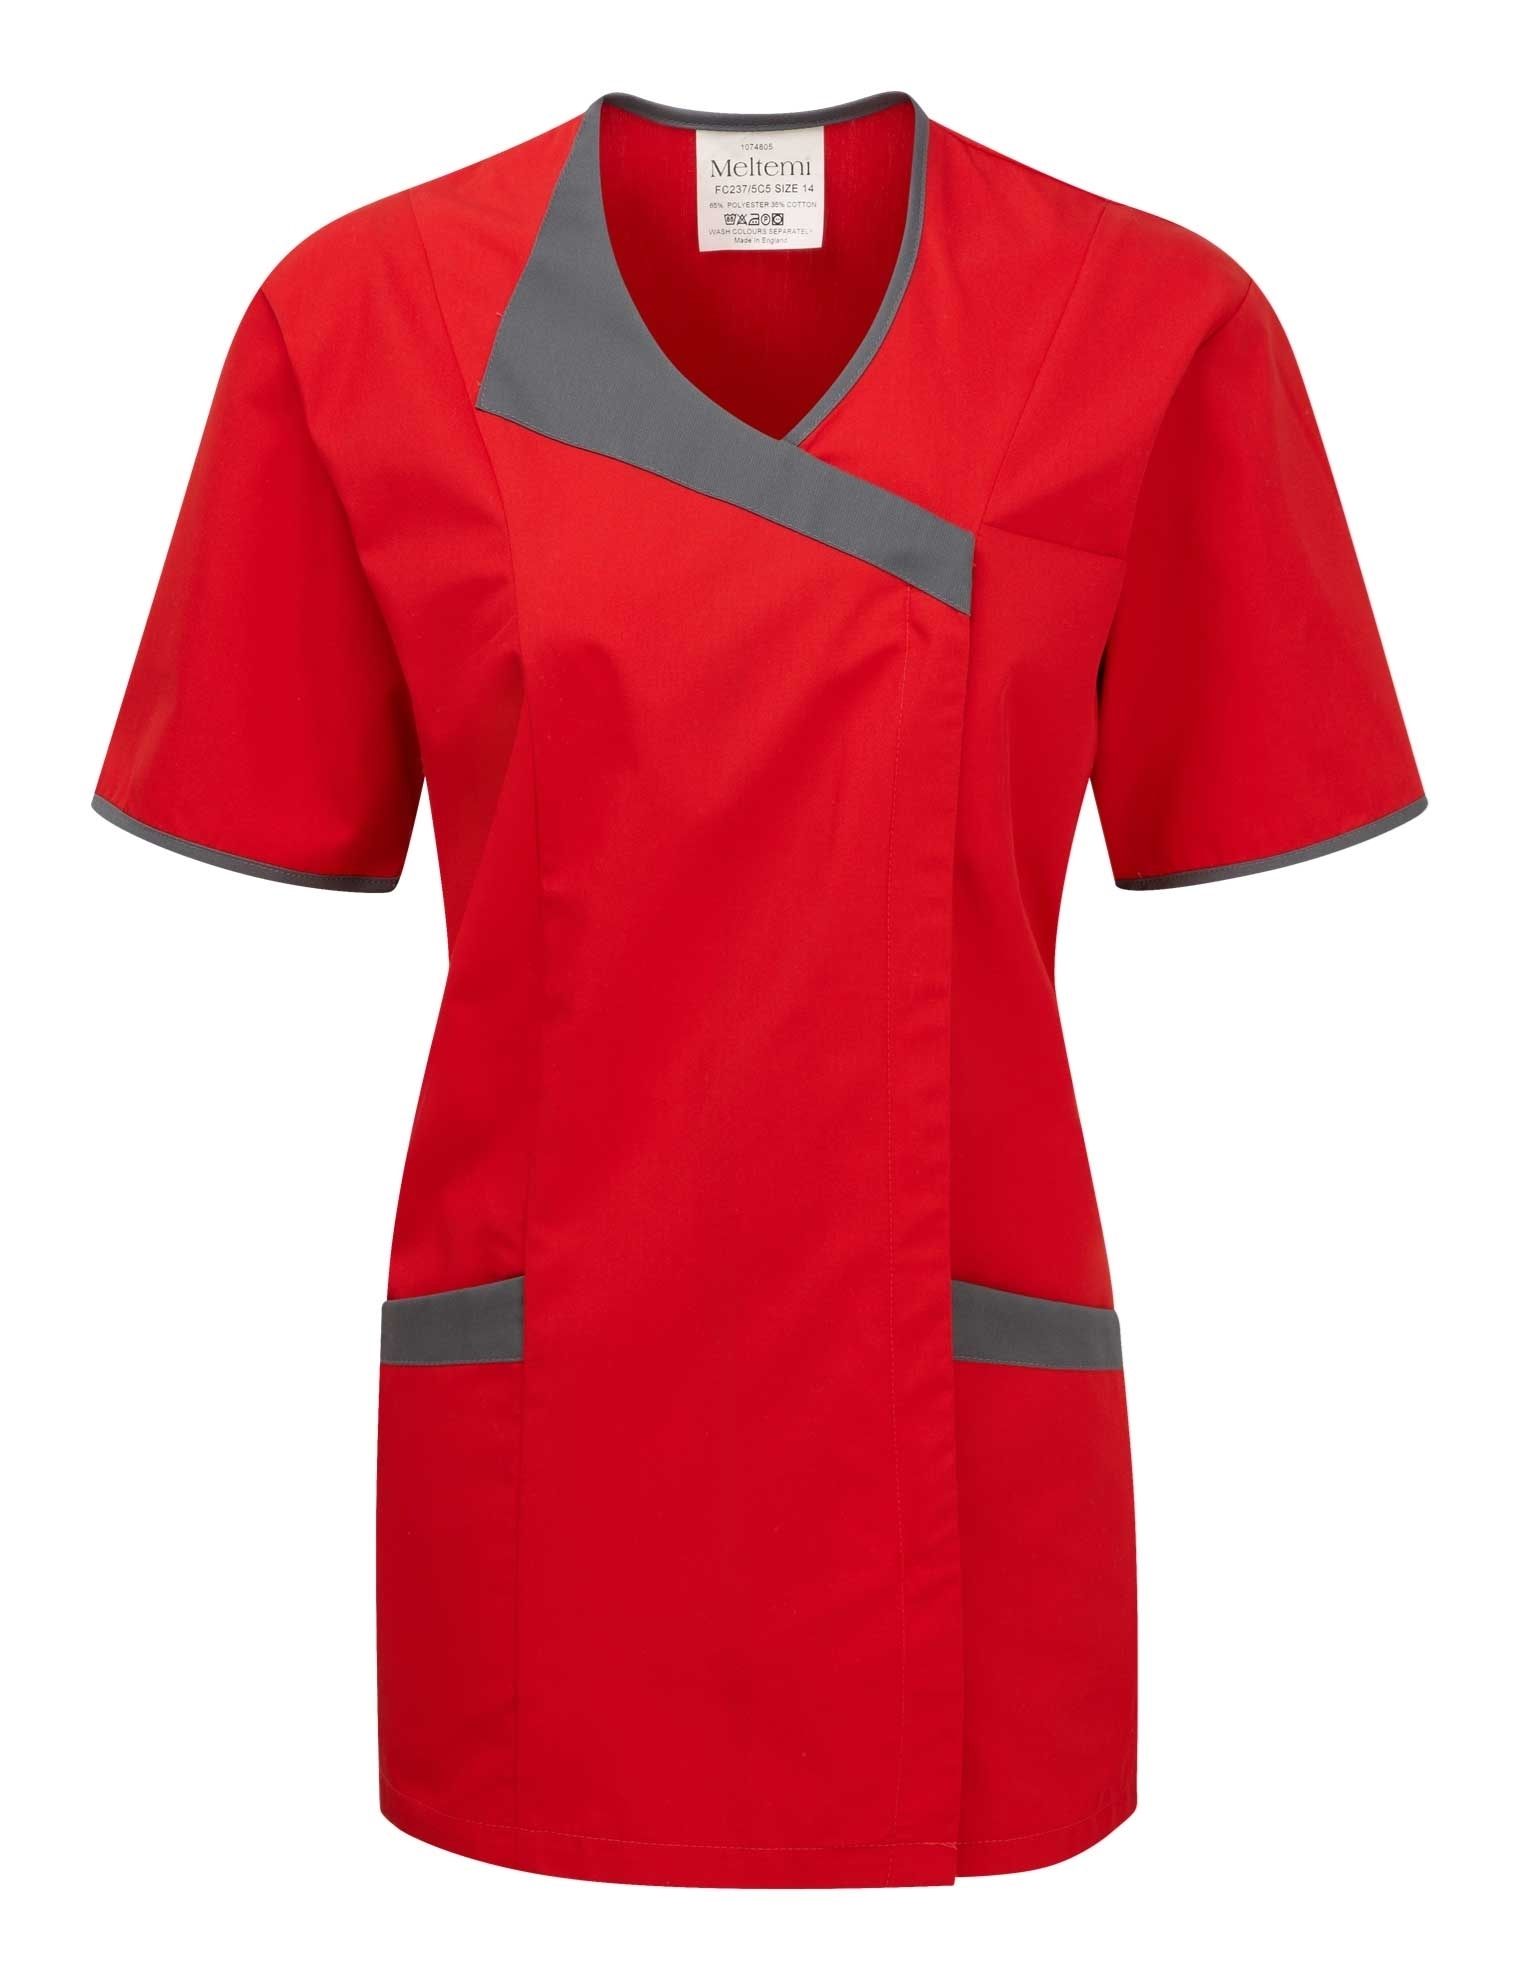 Picture of Asymmetric Tunic - Red With Dark Grey